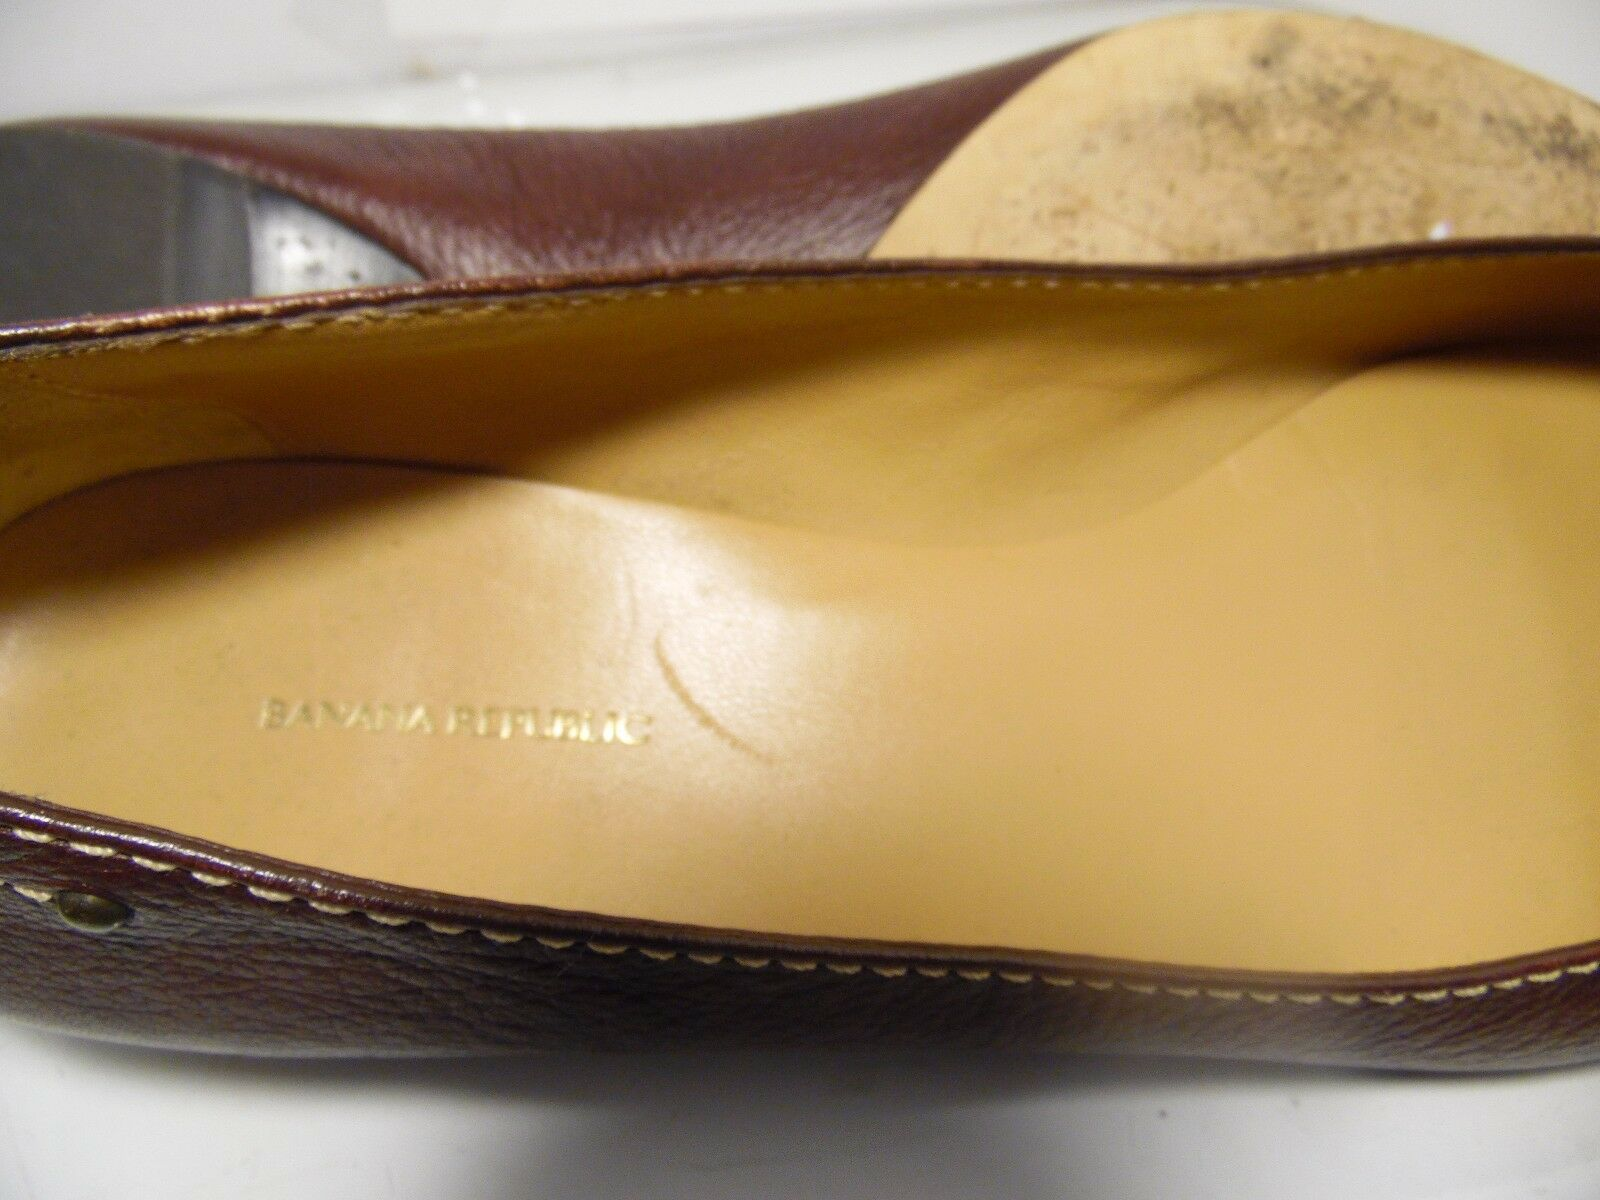 Banana Republic Toe Brown Leather Flats Buckle Point Toe Republic Womens Size 11 456744